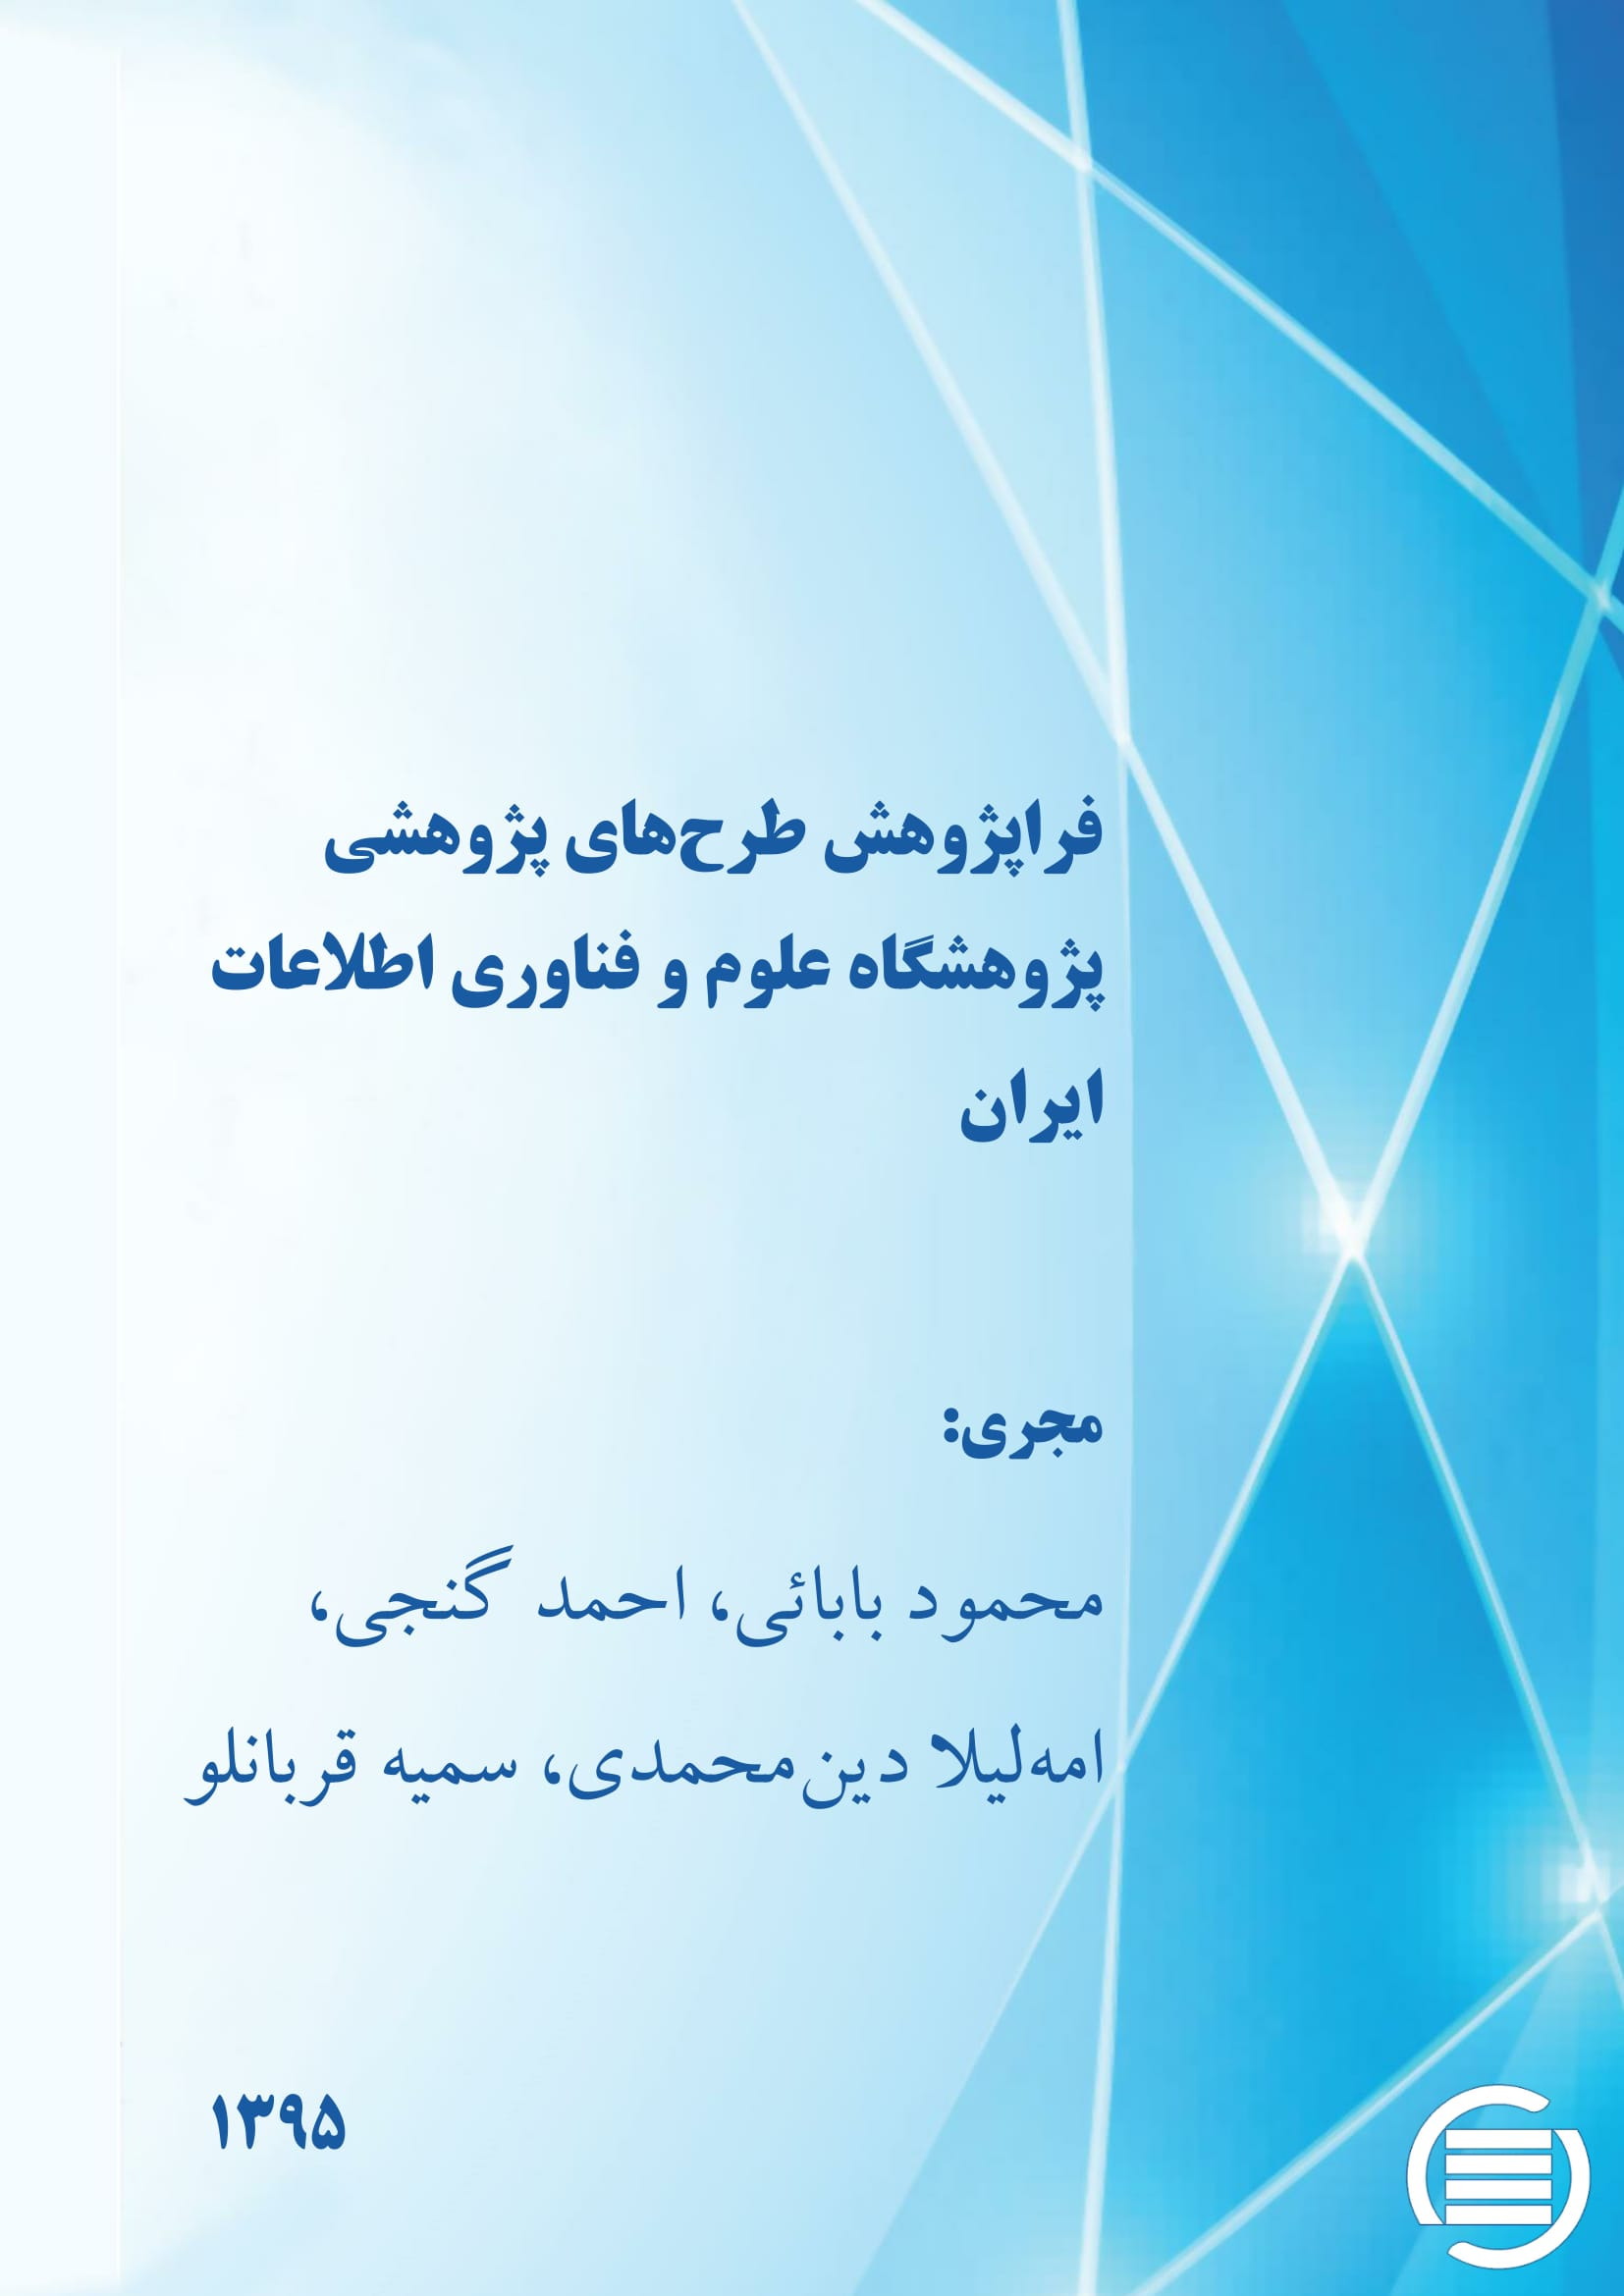 Meta-Research of the Research Projects of the Iranian Research Institute for Information Science & Technology (From the beginning to the end of 1393)